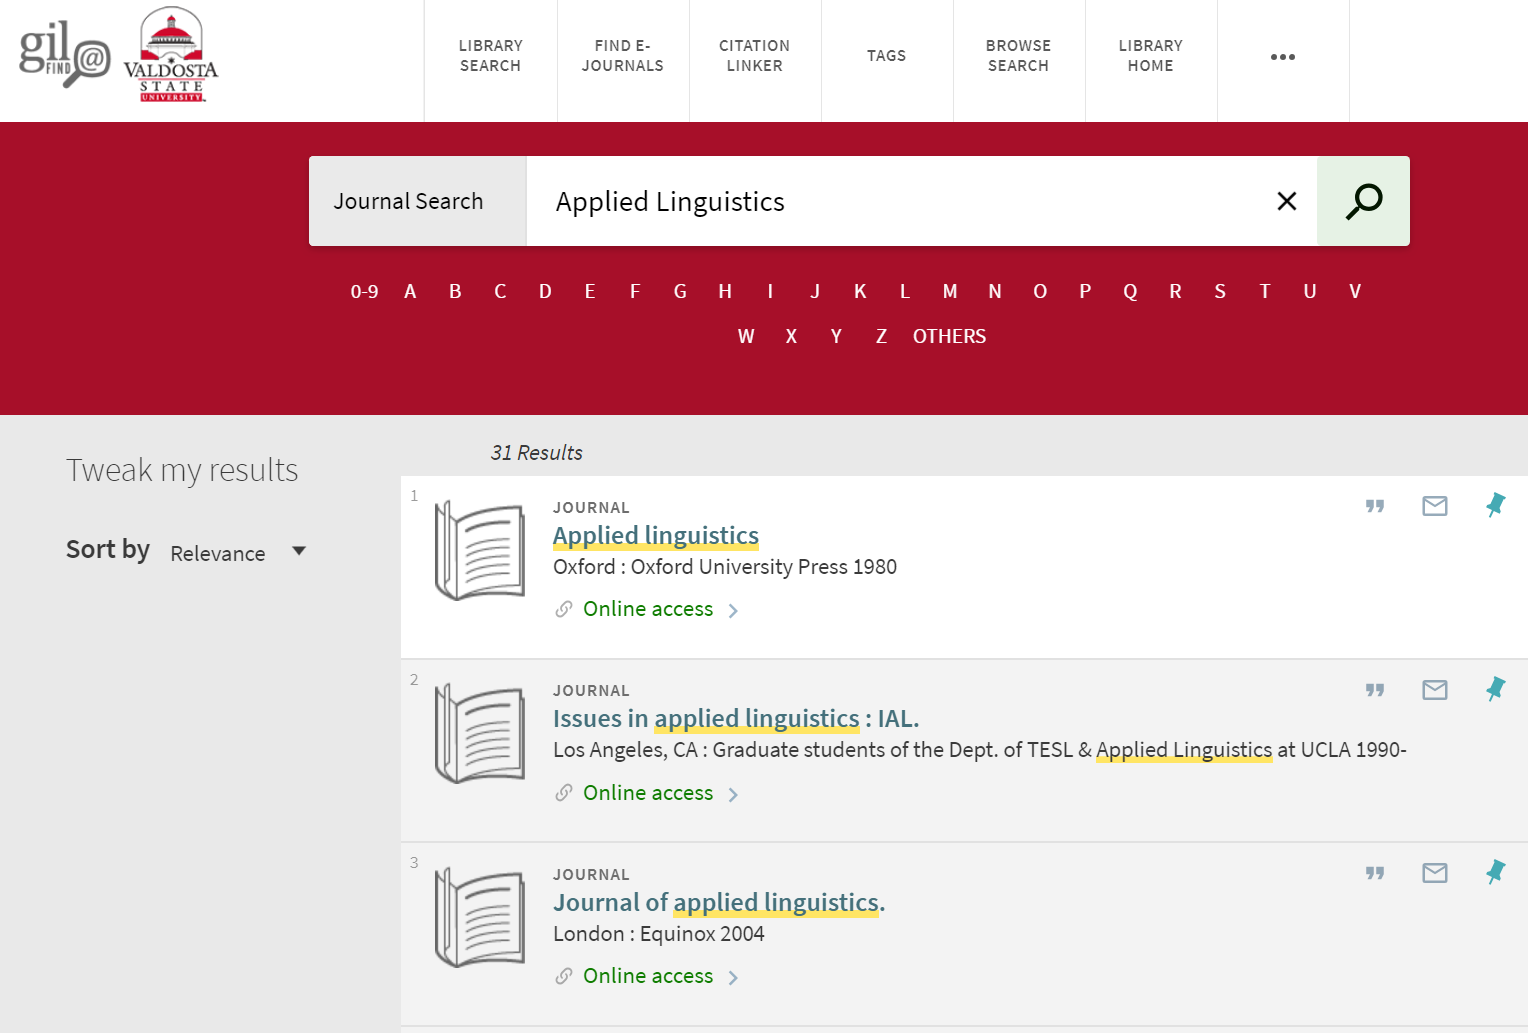 Screenshot of Searching Journals A-Z. Applied Linguistics is entered in search box